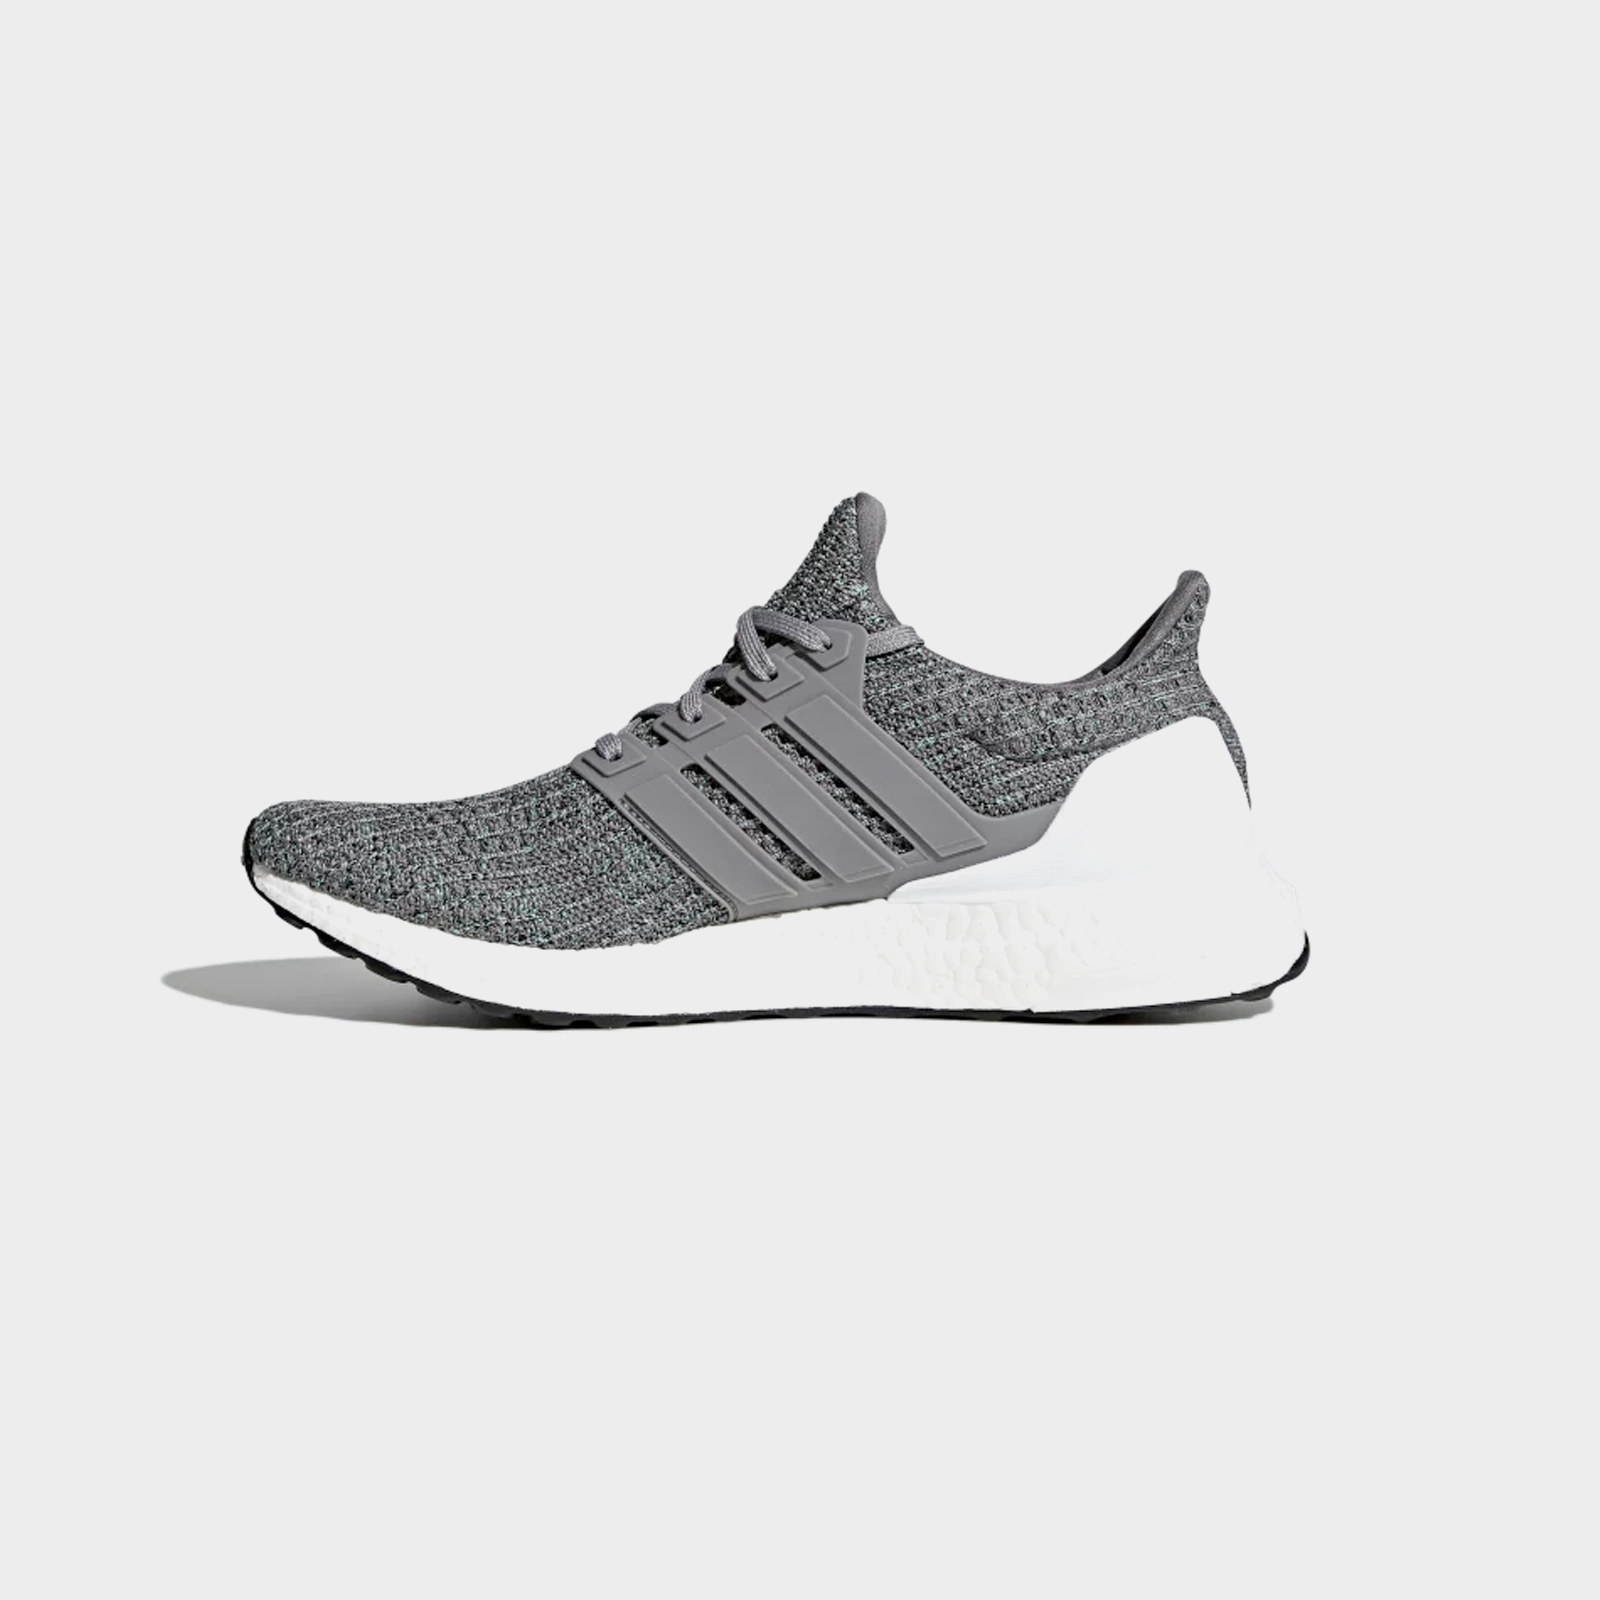 quality design 1c3ad 2e274 adidas UltraBOOST - Cp9251 - Sneakersnstuff | sneakers ...